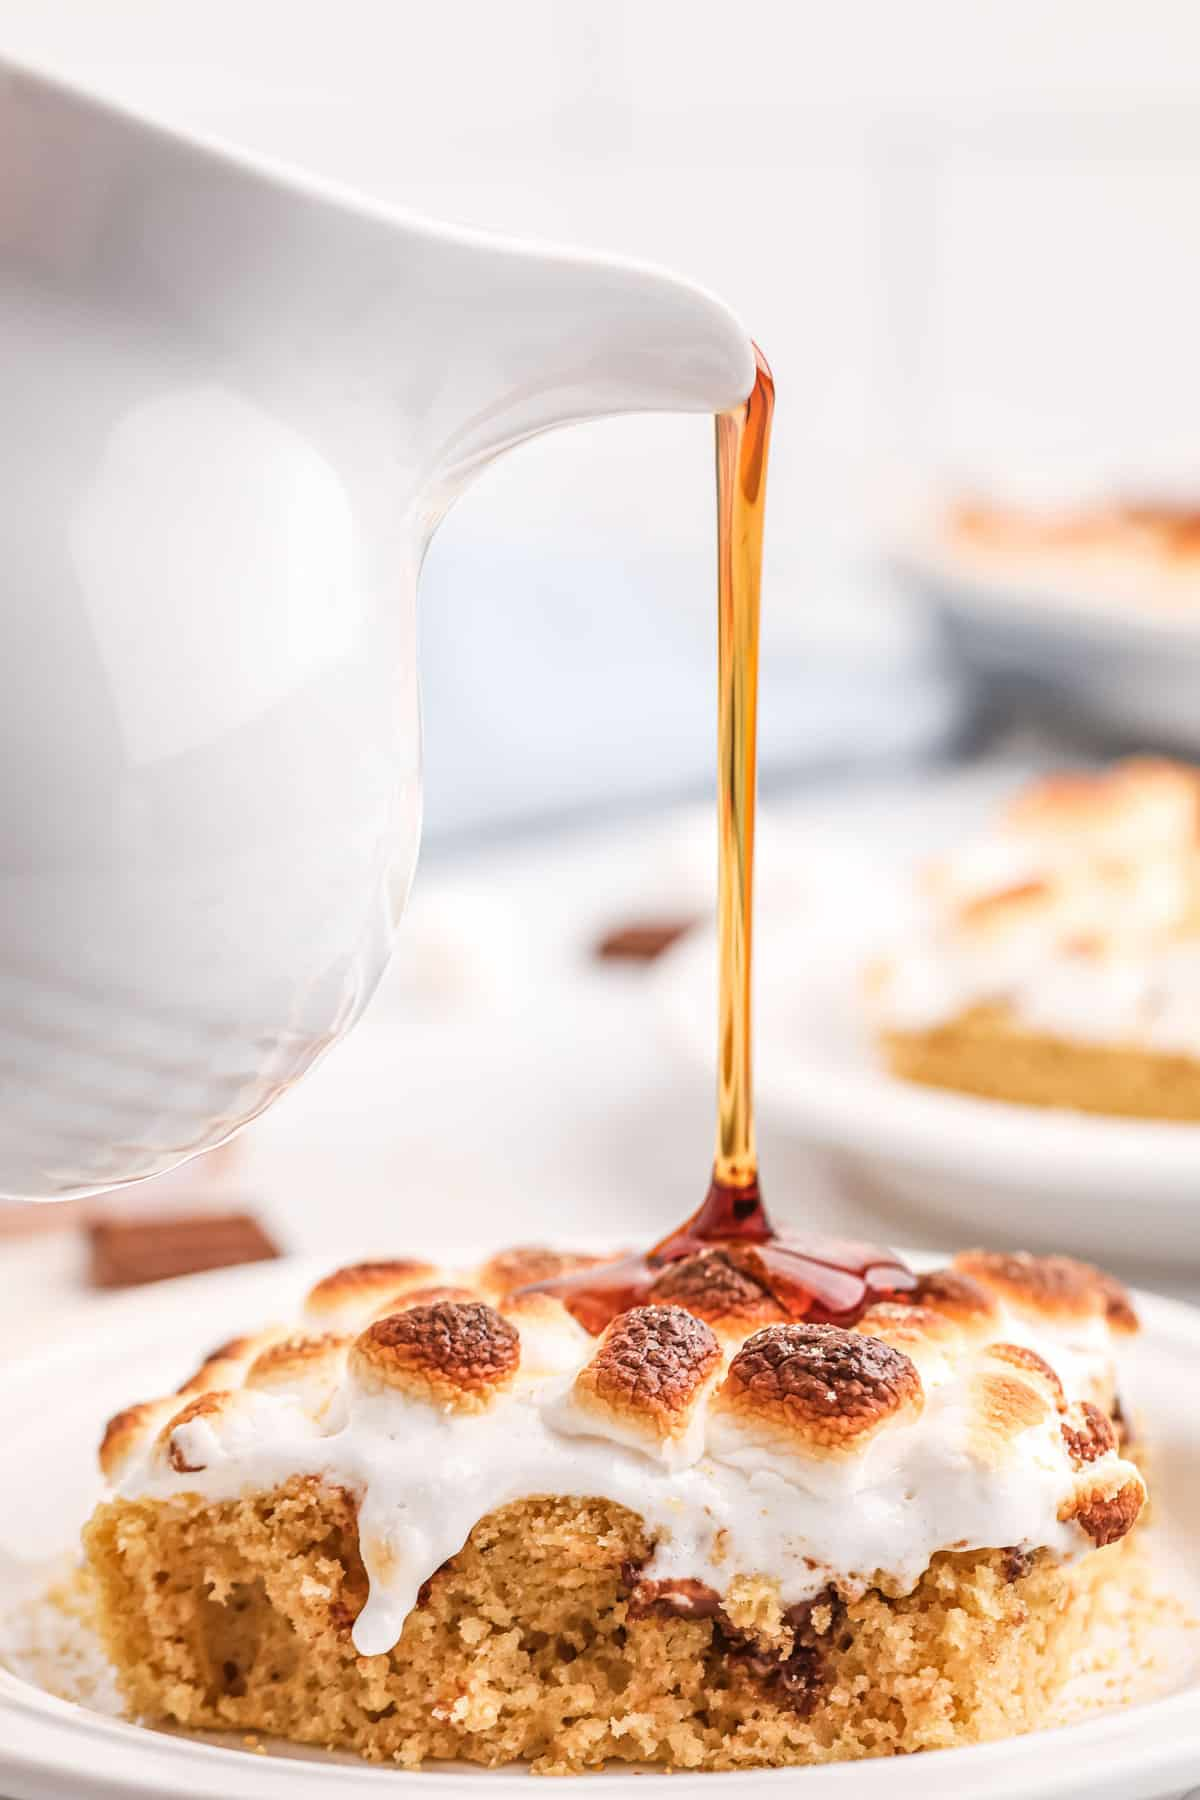 Syrup being poured on top of a marshmallow topped pancake.